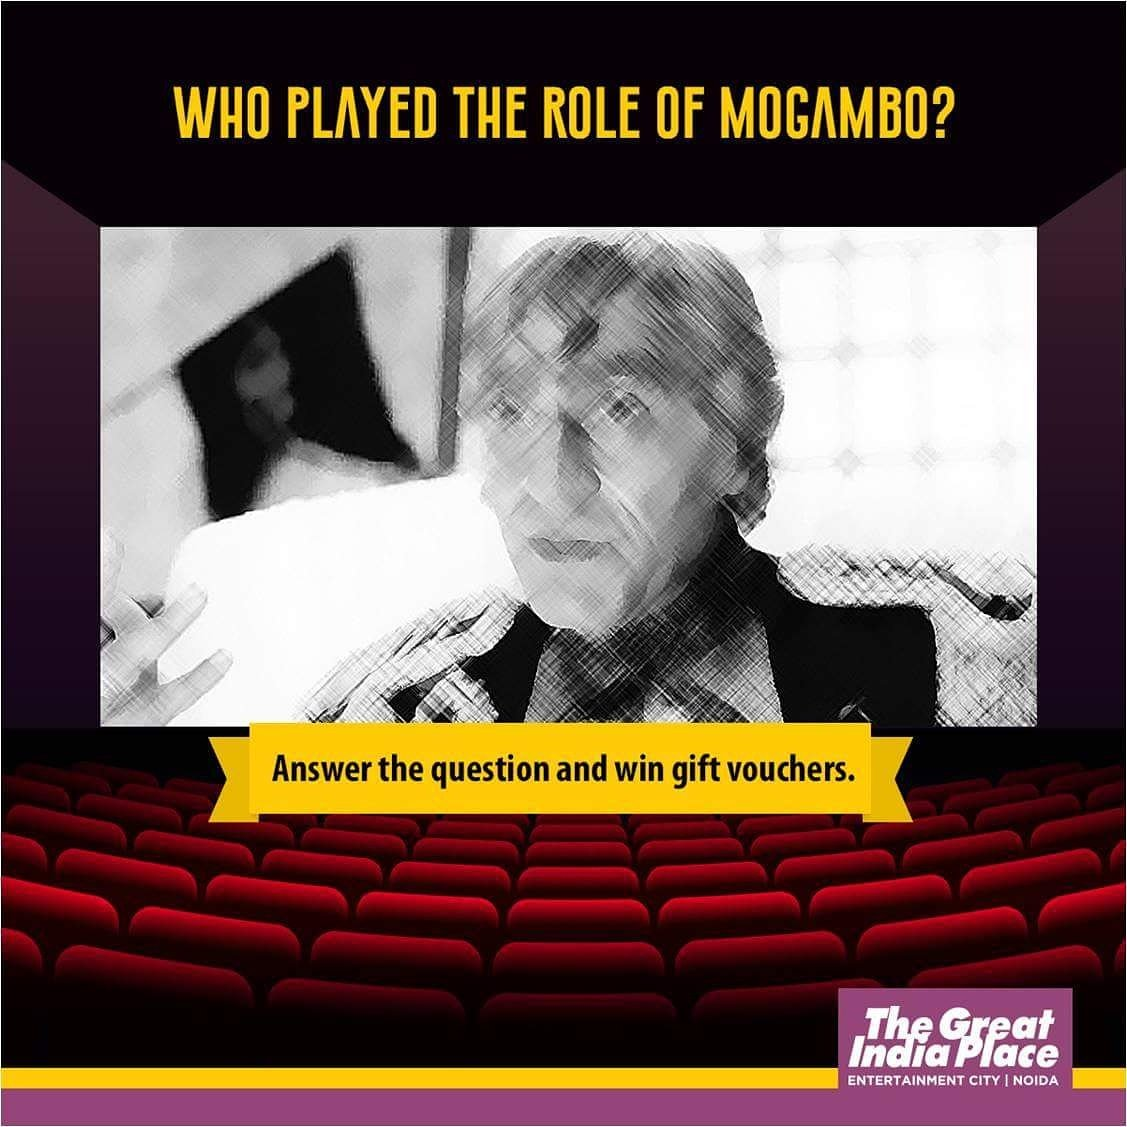 Are you a #movie buff? Answer this and 5 lucky winners to #win exciting vouchers worth Rs 1000. Anytime is movie time at #TheGreatIndiaPlace. Do not forget to #followus, share the post and invite at least 5 of your friends to join in the fun. #ContestAlert<br>http://pic.twitter.com/IwfTqx8gk1